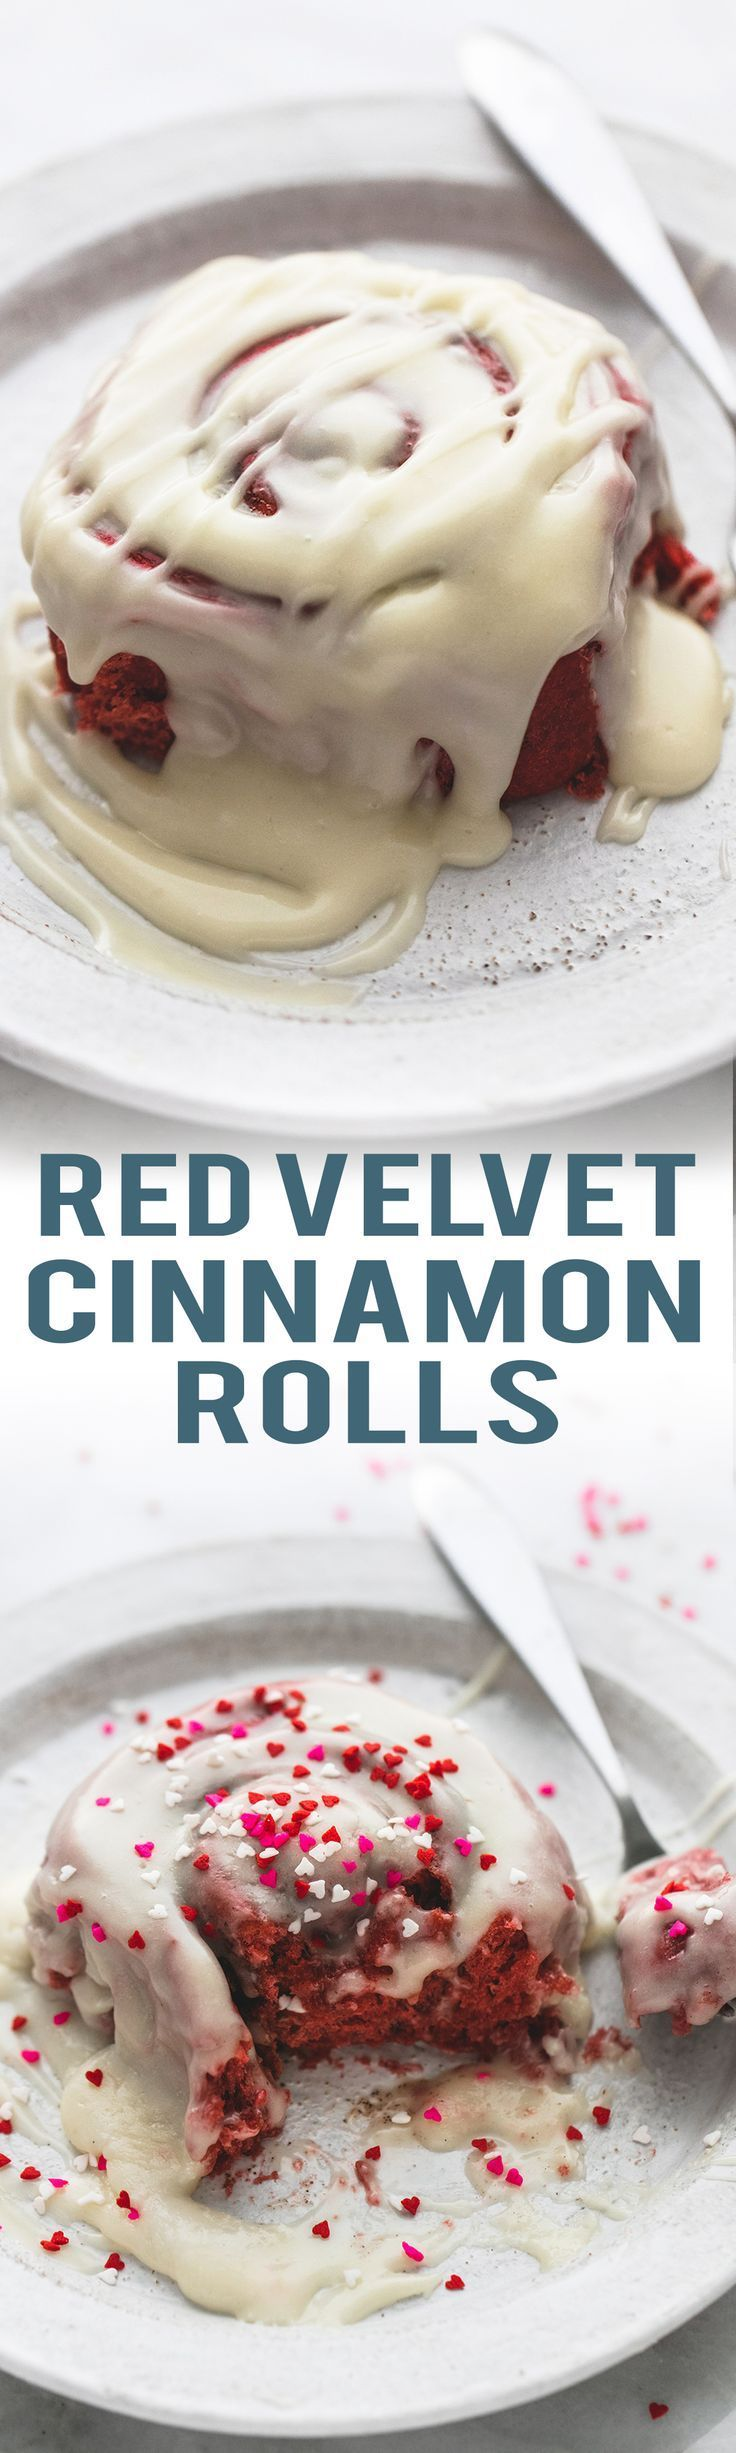 Super fluffy Red Velvet Cinnamon Rolls with Brown Butter Cream Cheese Frosting | http://lecremedelacrumb.com